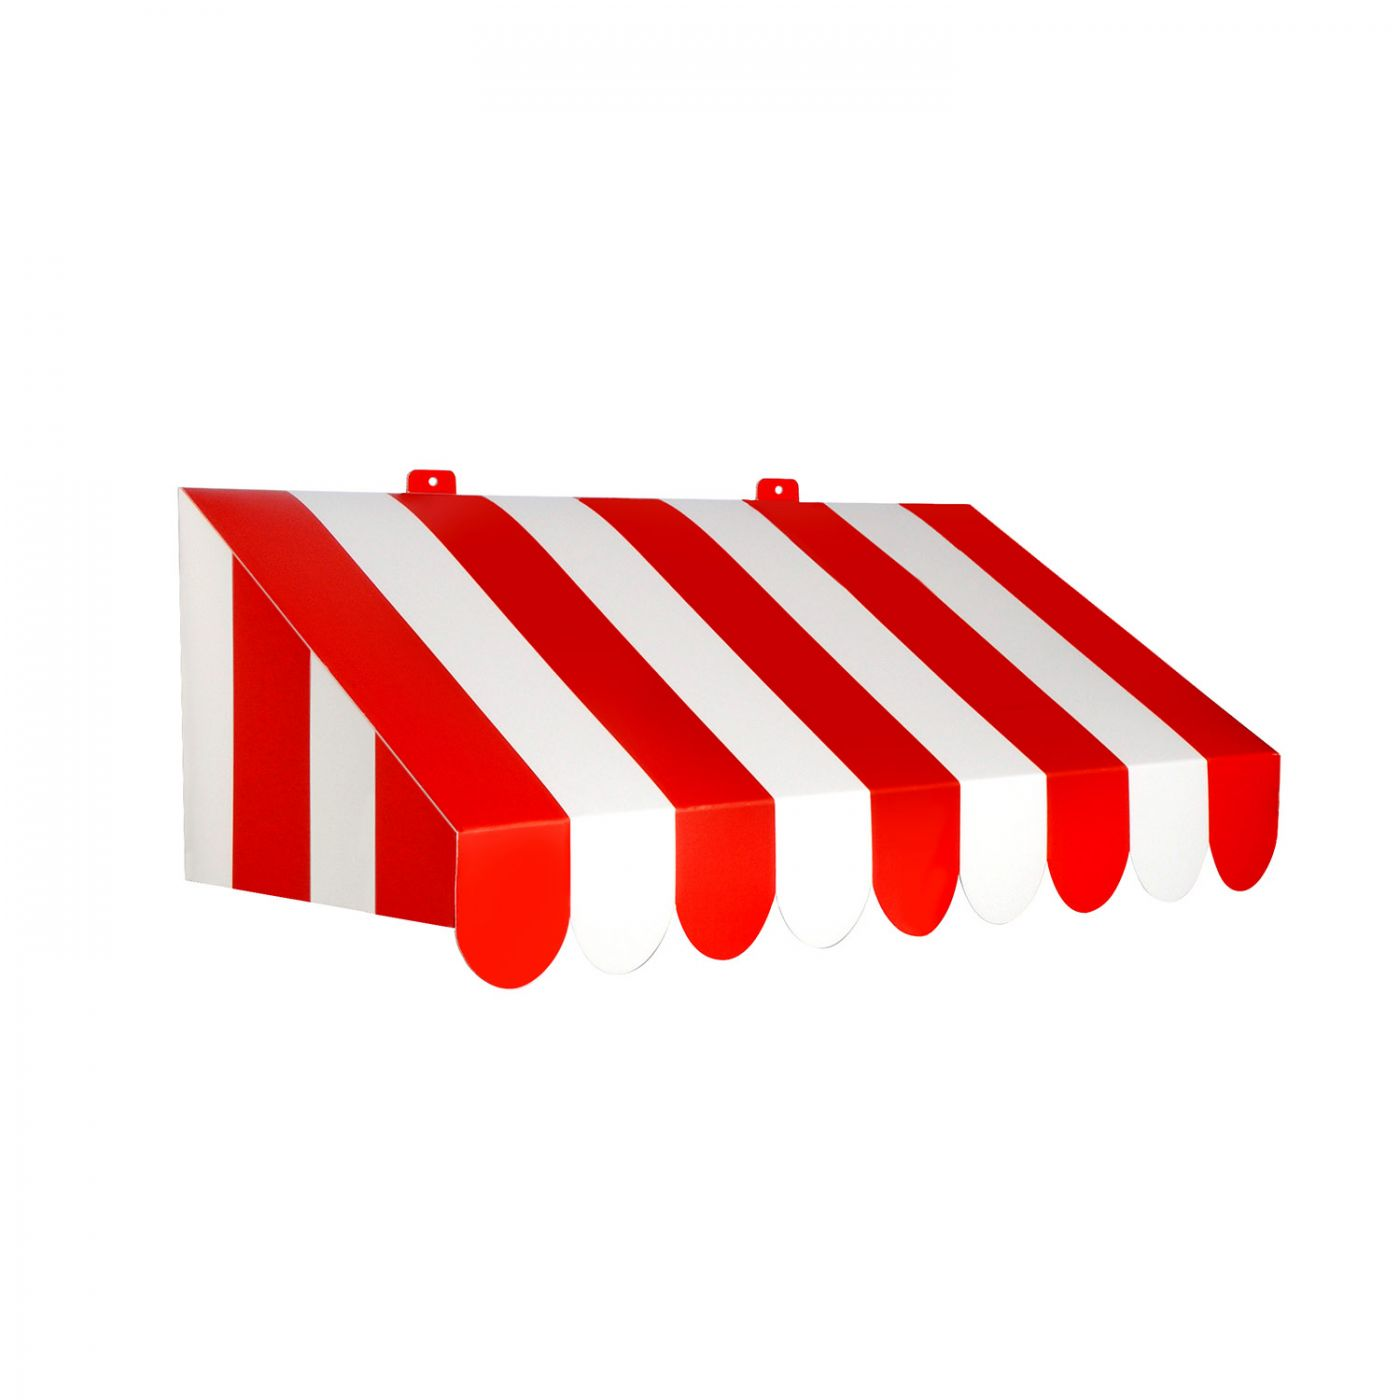 3-D Red & White Awning Wall Decoration (6) image